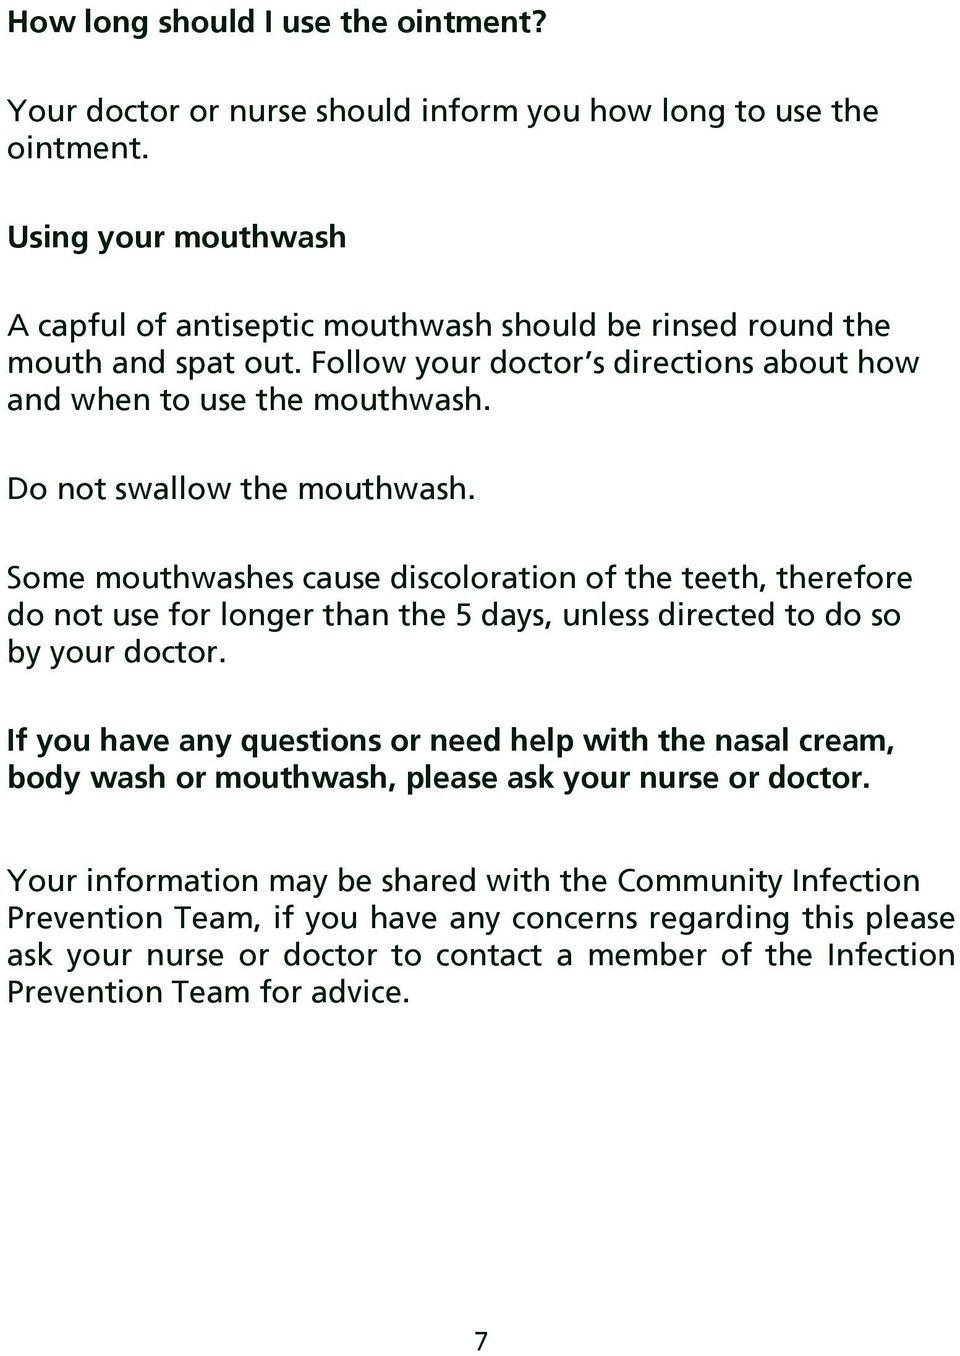 Do not swallow the mouthwash. Some mouthwashes cause discoloration of the teeth, therefore do not use for longer than the 5 days, unless directed to do so by your doctor.